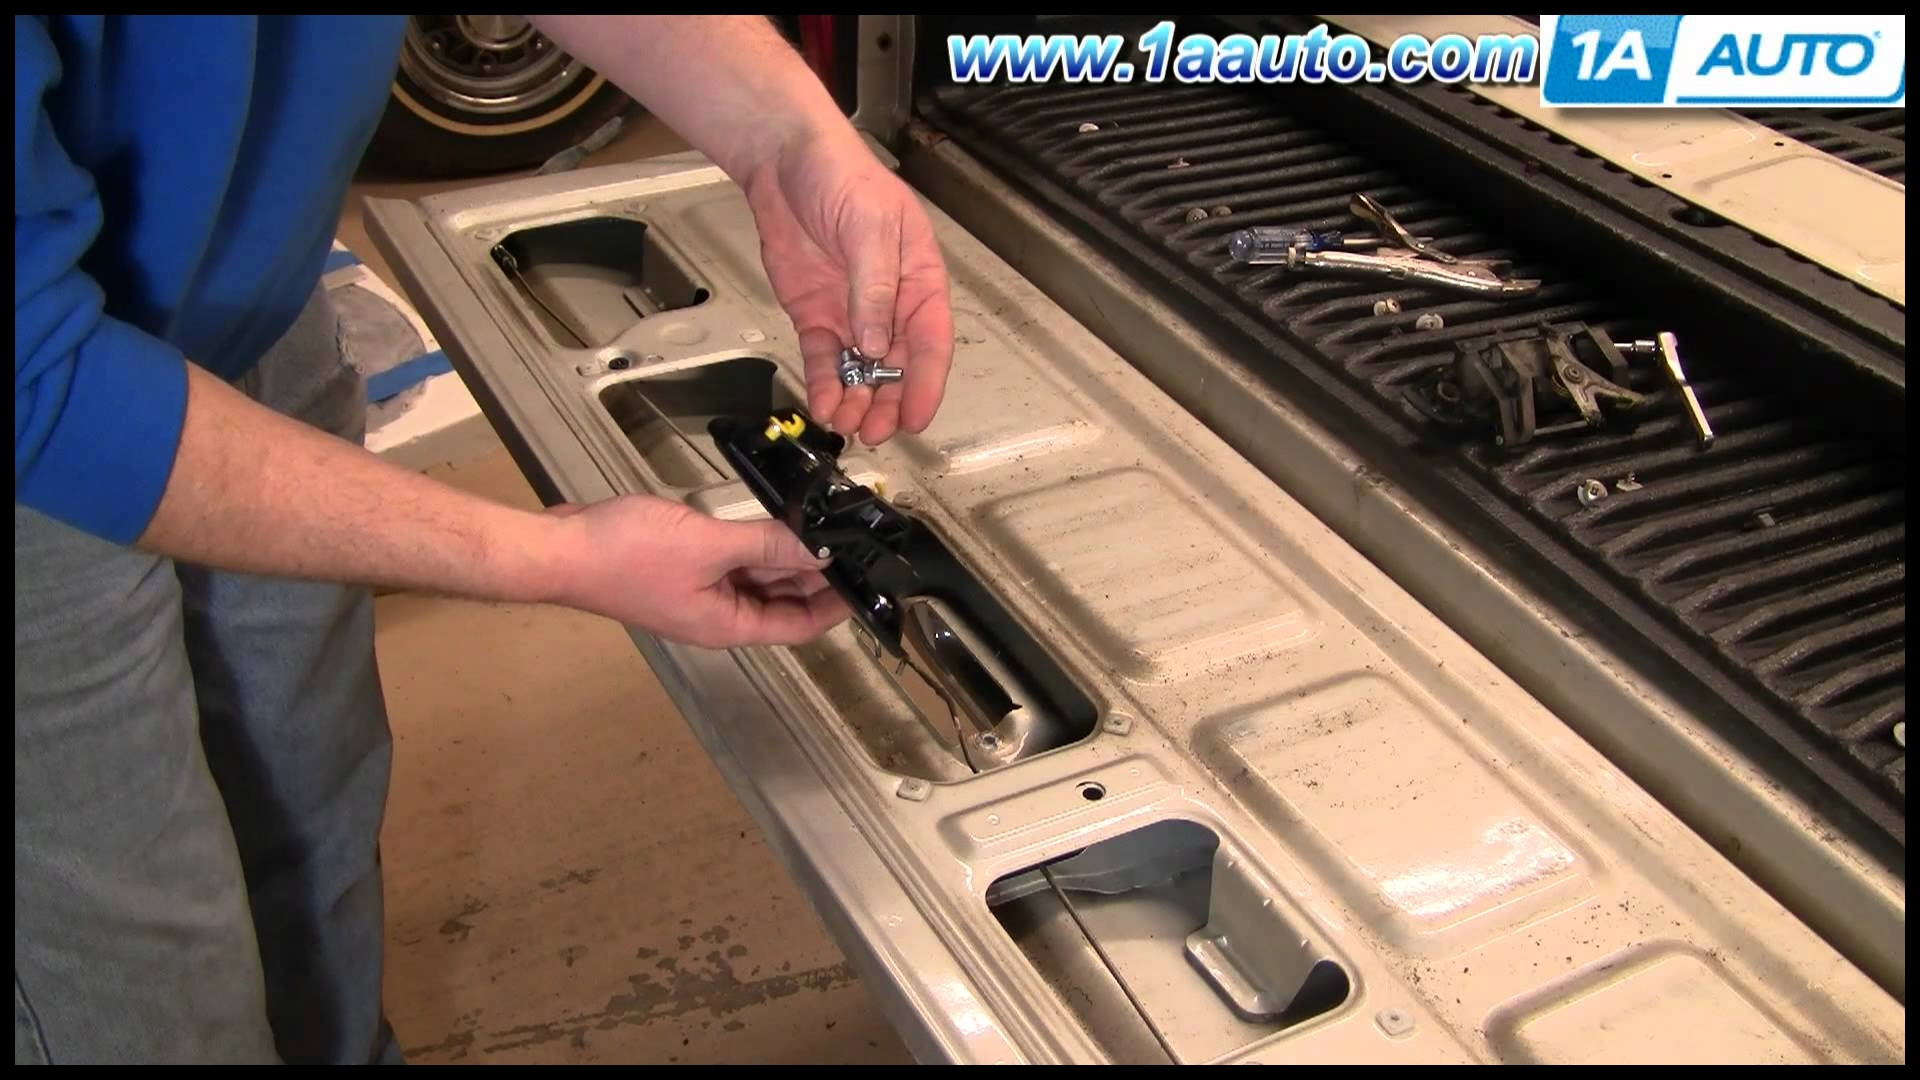 How to Install Replace Broken Tailgate Handle Toyota Ta a 95 04 1AAuto